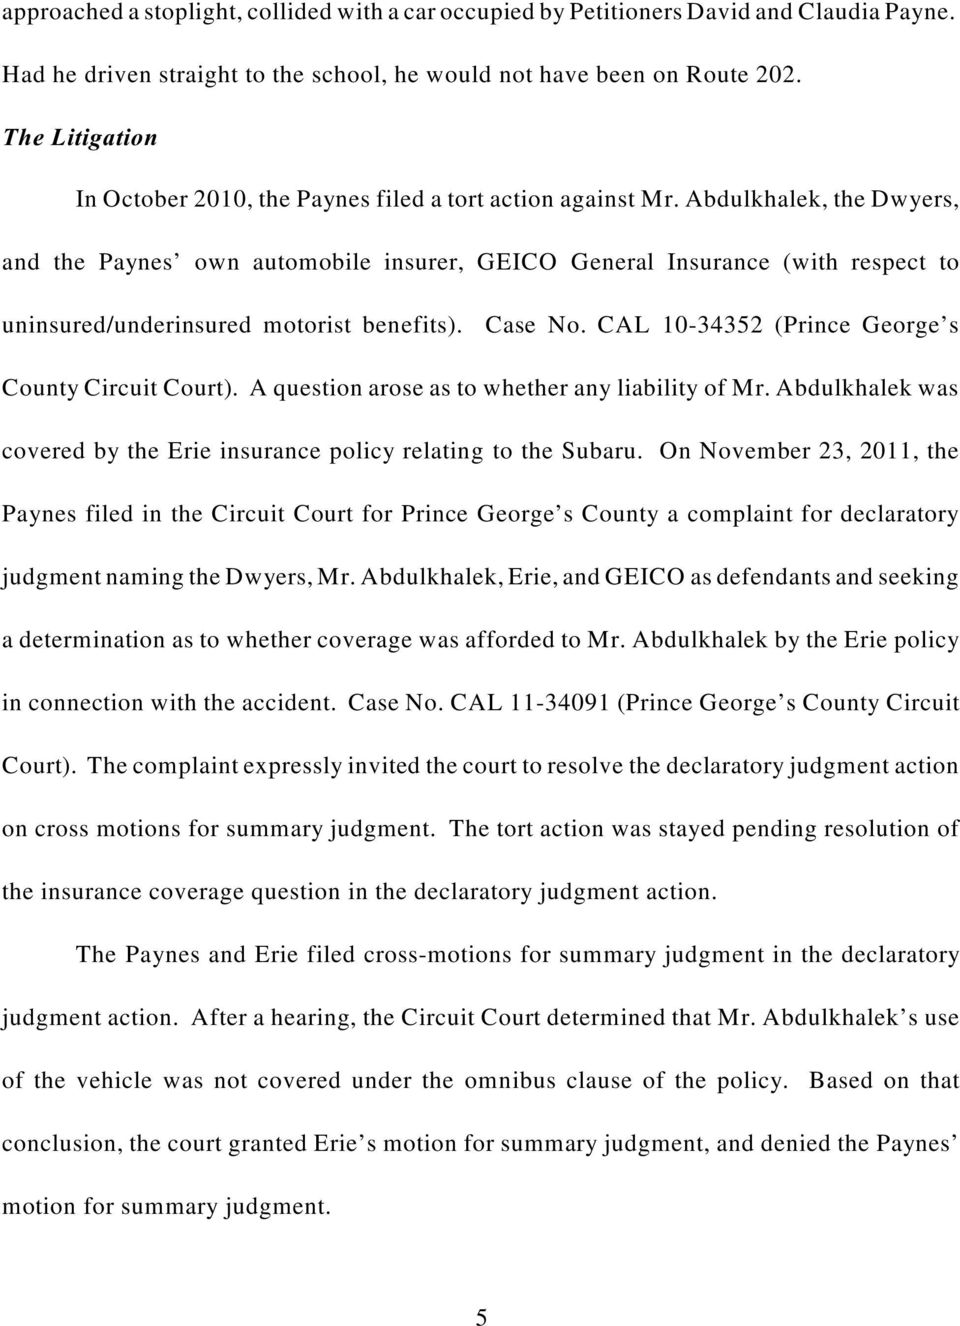 Abdulkhalek, the Dwyers, and the Paynes own automobile insurer, GEICO General Insurance (with respect to uninsured/underinsured motorist benefits). Case No.